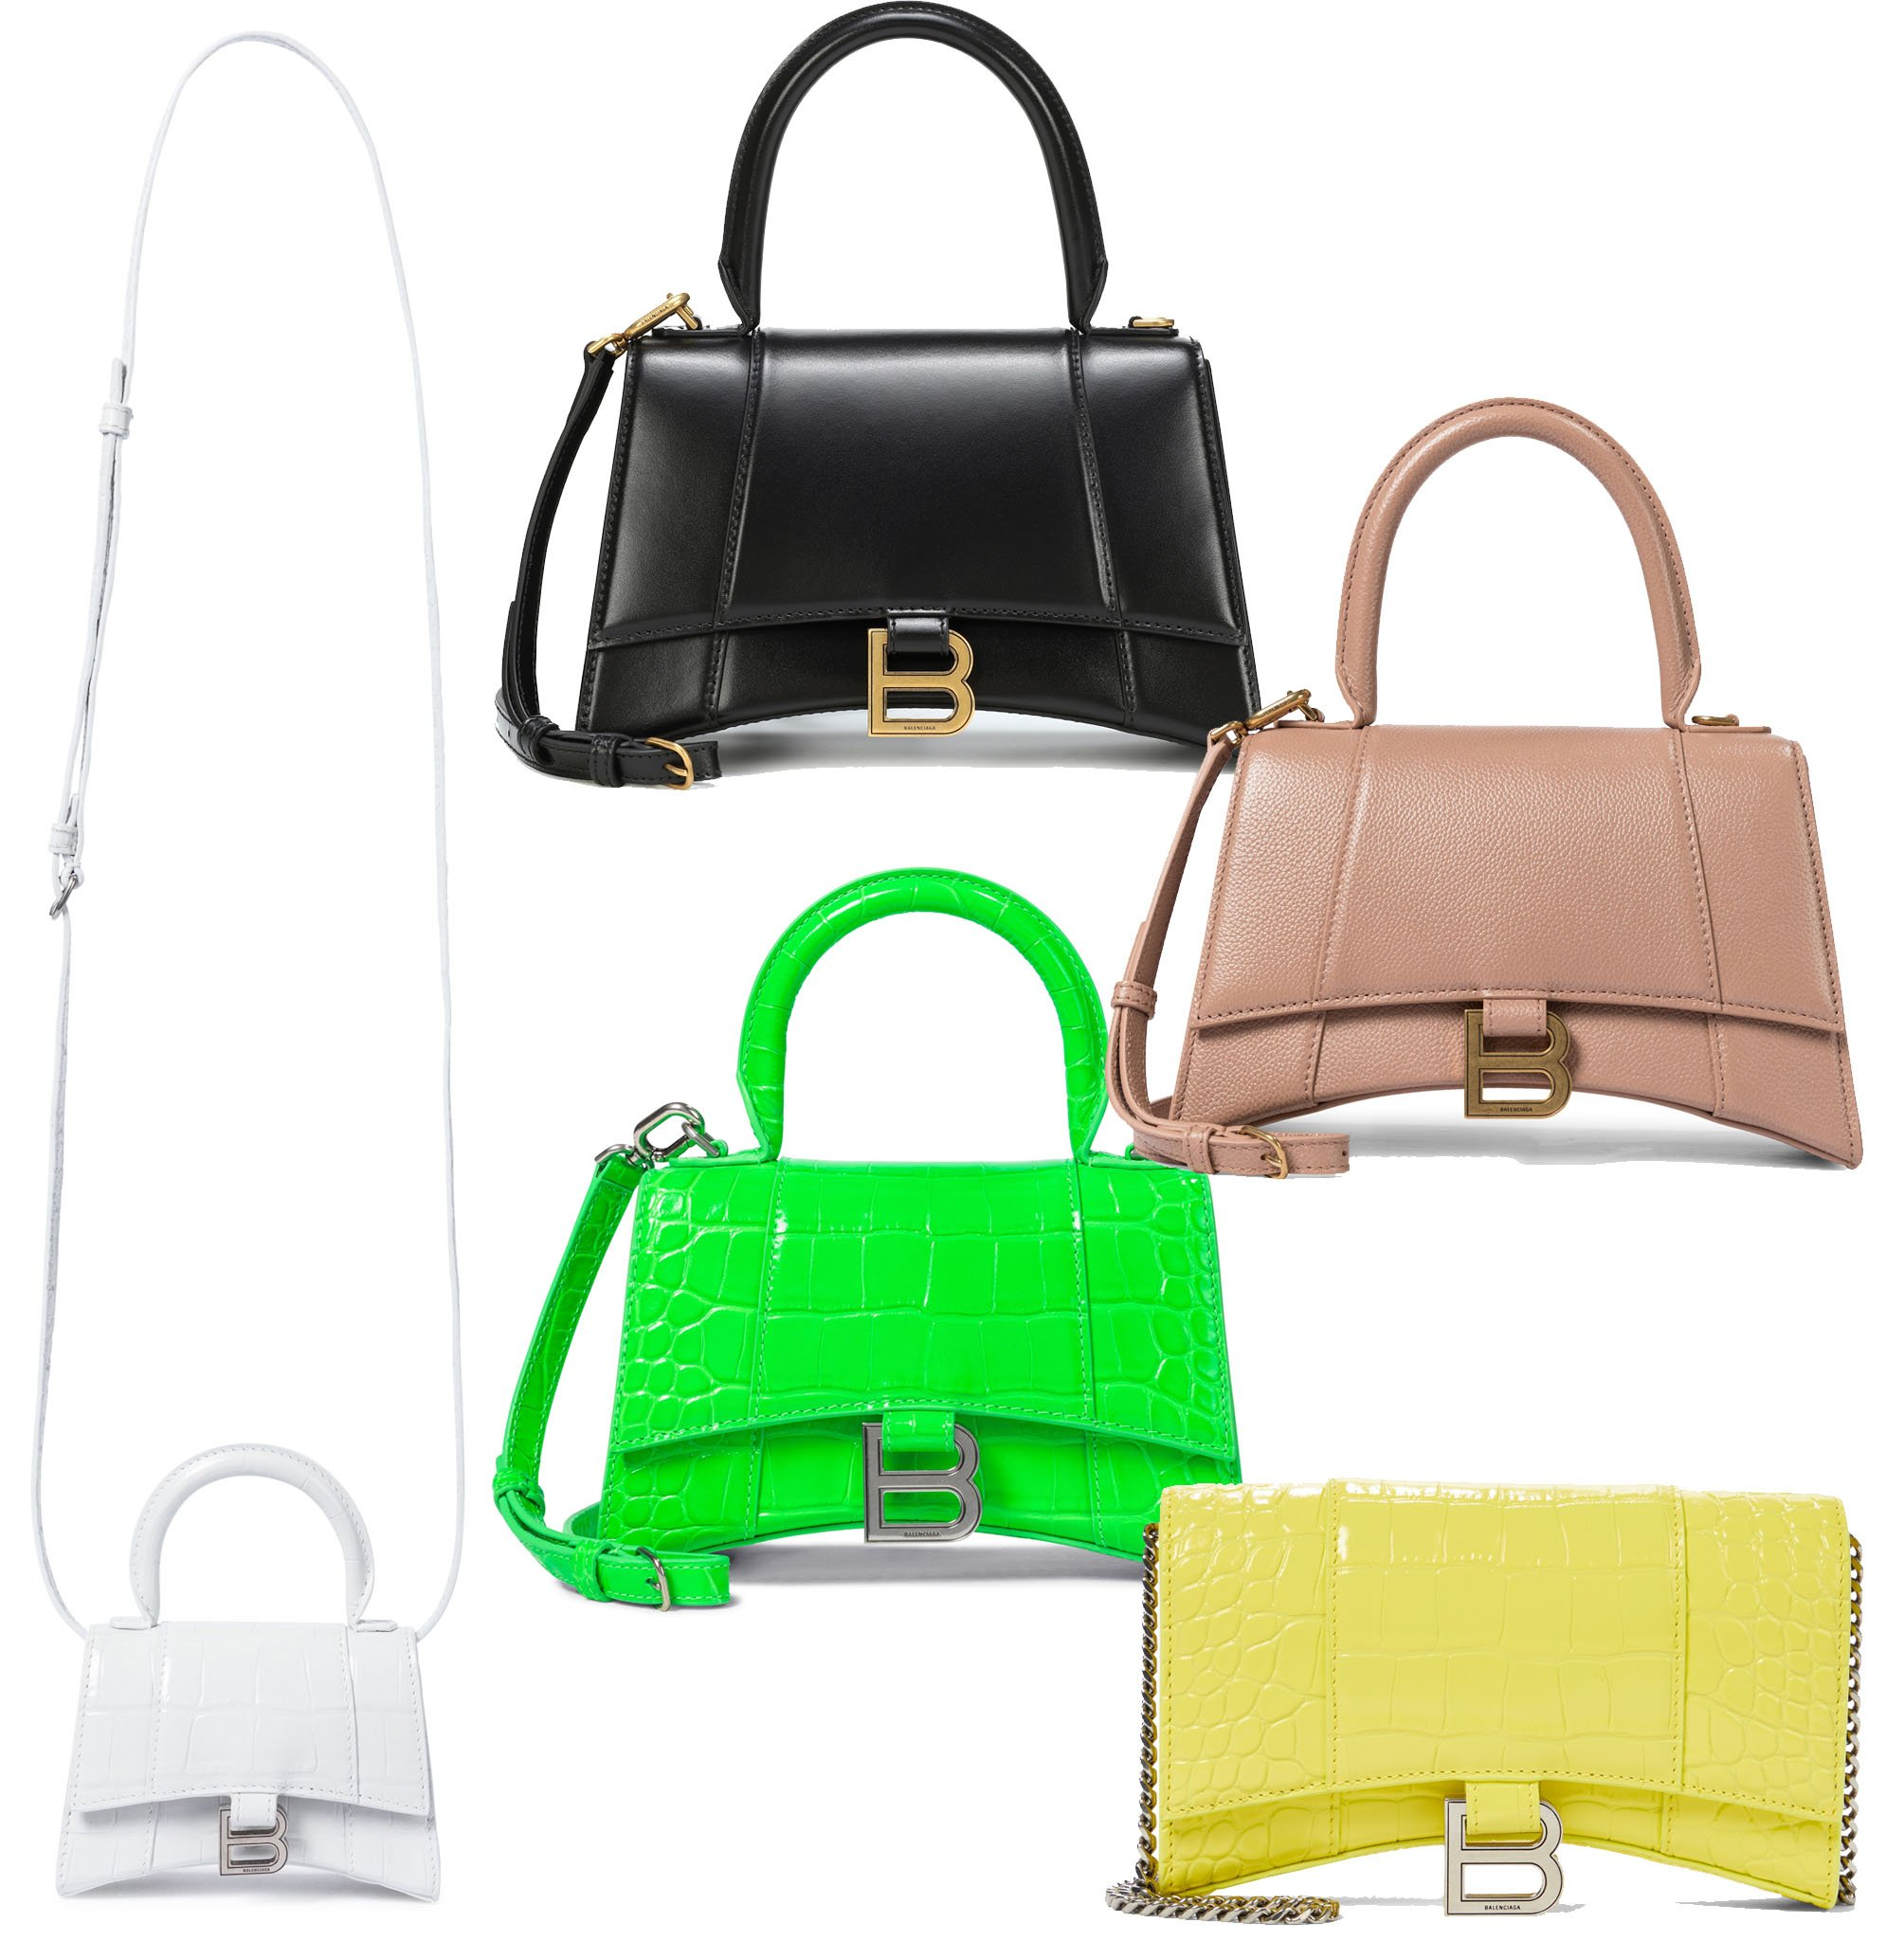 The Hourglass bag from Balenciaga takes its name from its sharp structural hourglass silhouette